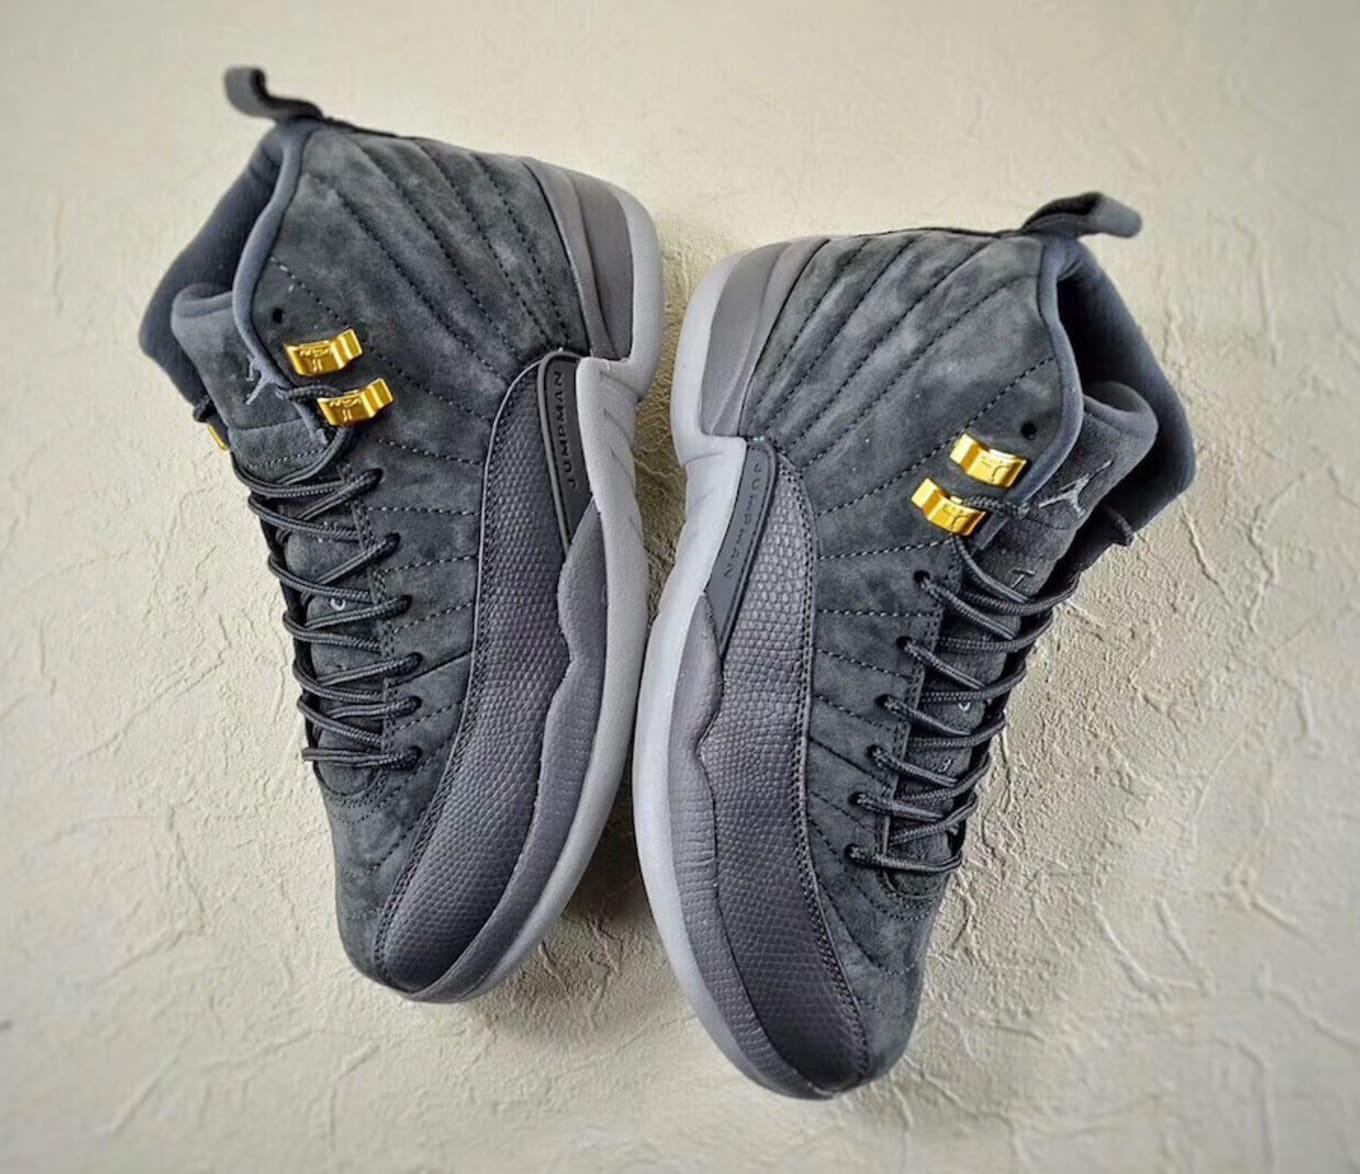 12b4aecc306 Air Jordan 12 Dark Grey 2017 Release Date 130690-005 | Sole Collector